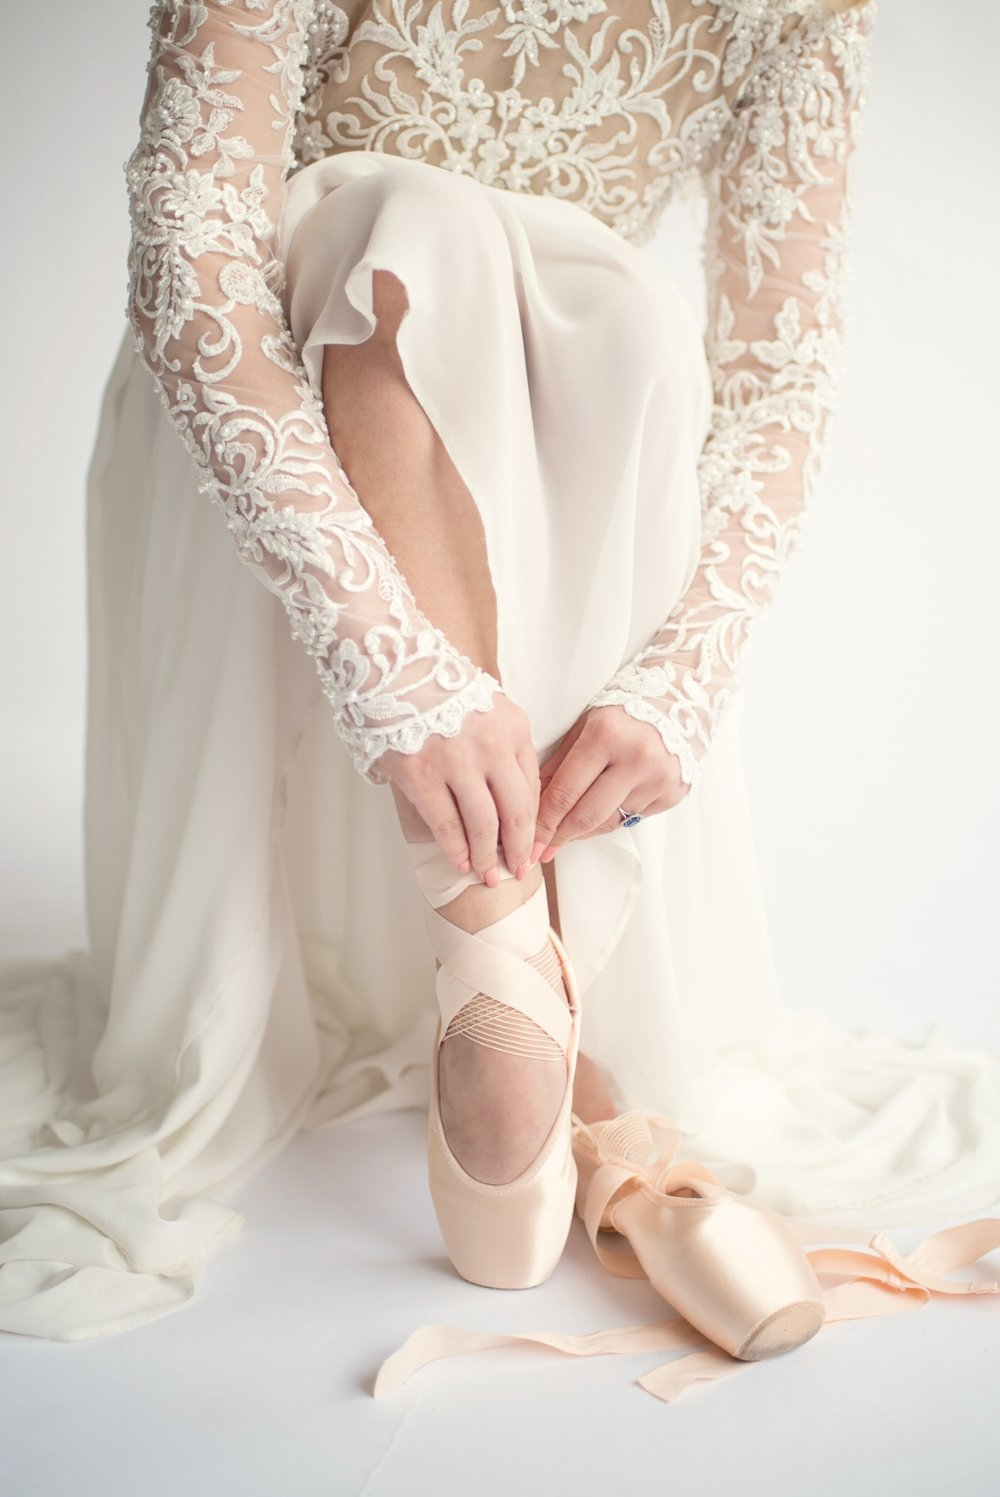 Click for more inspiration from  Ballet inspired bridal editorial